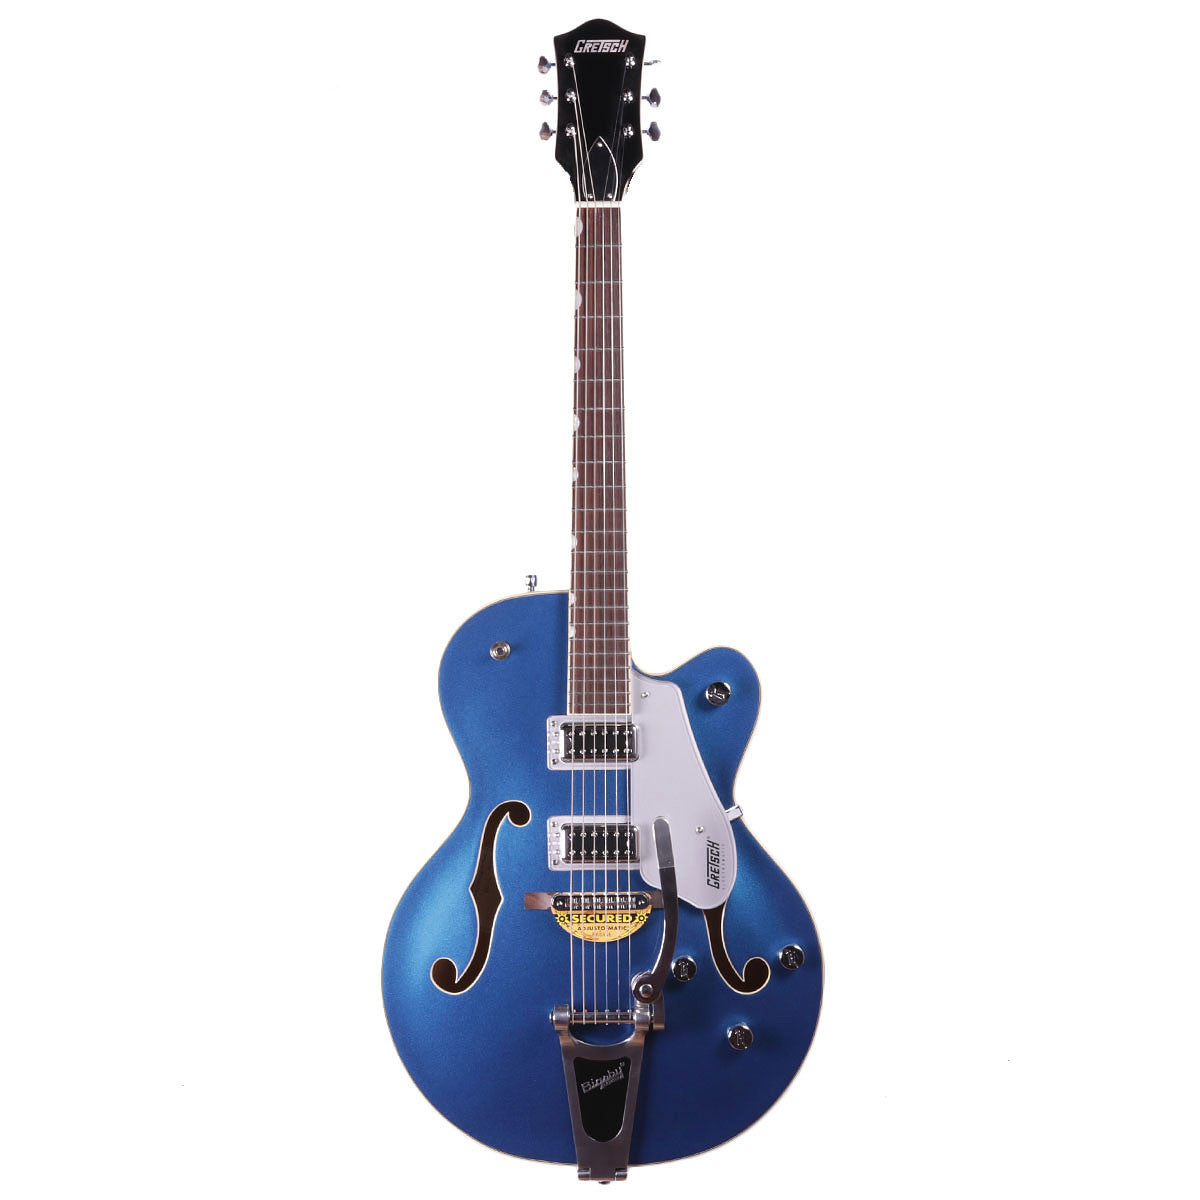 Gretsch G5420T 2016 Electromatic Hollowbody w/Bigsby - Fairlane Blue - Vintage Guitar Boutique - 2